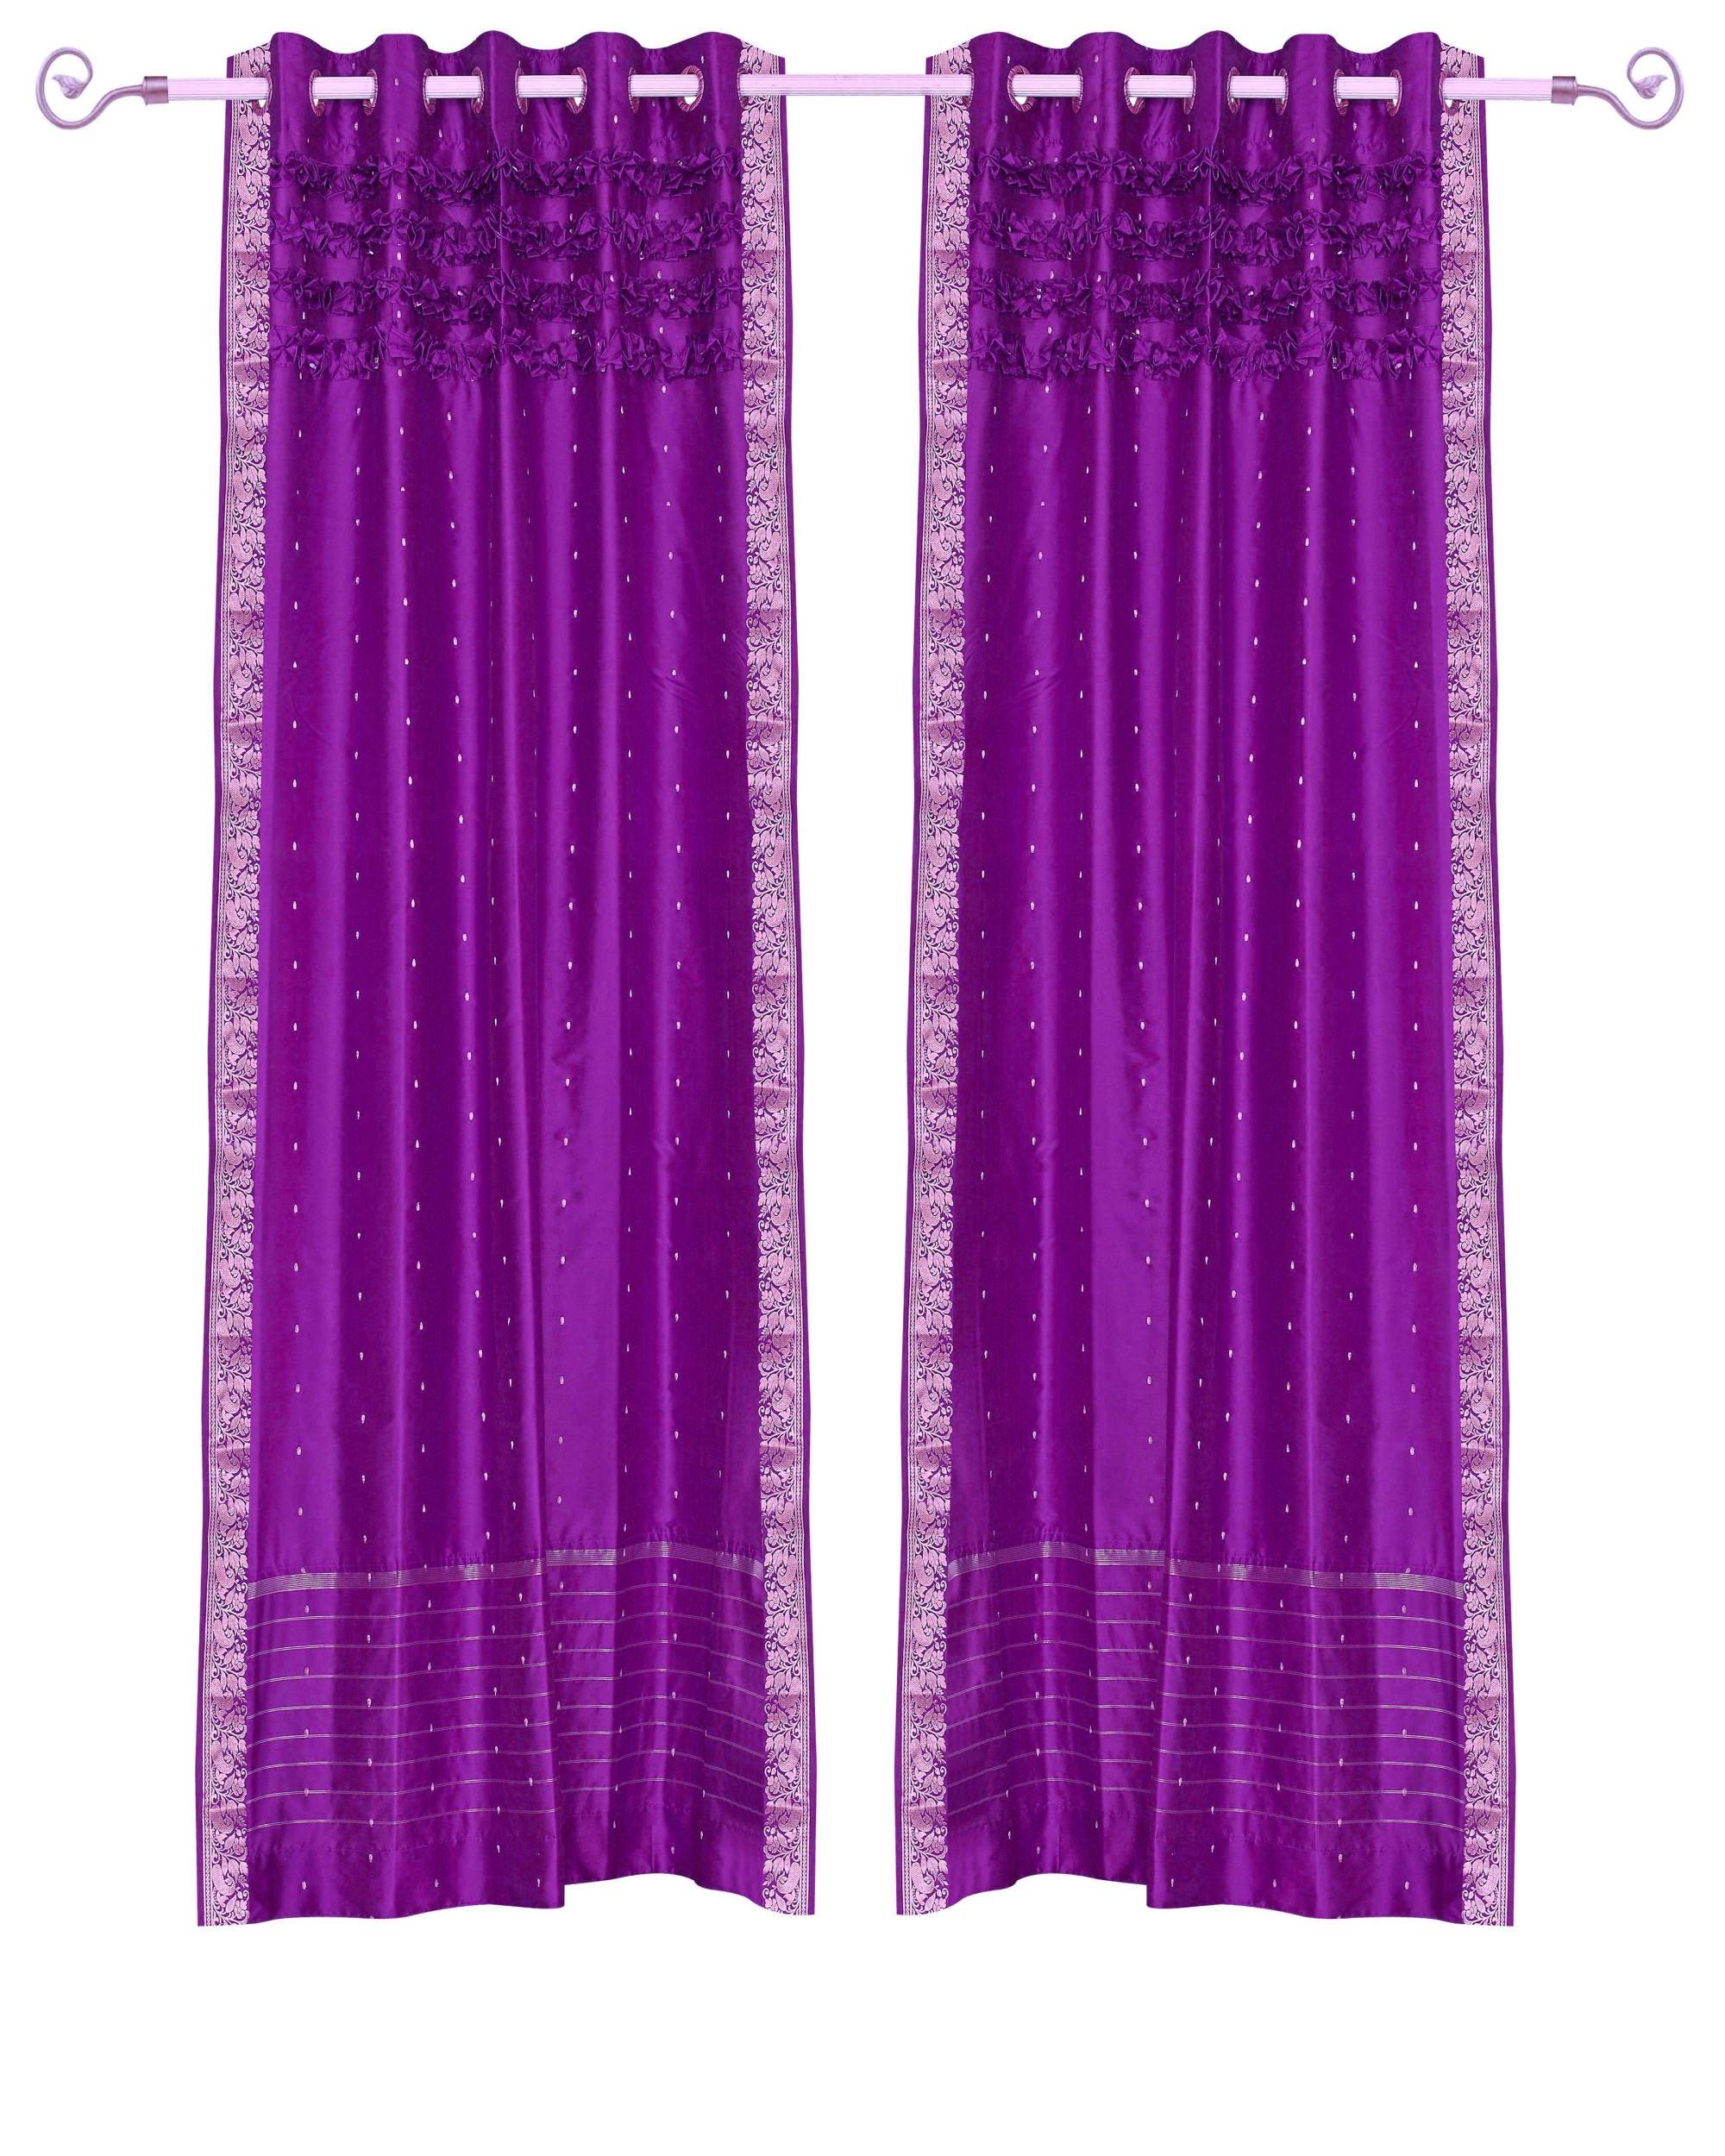 Violet Red Hand Crafted Grommet Top  Sheer Sari Curtain  Drape  Panel   - 43W x 108L - Piece